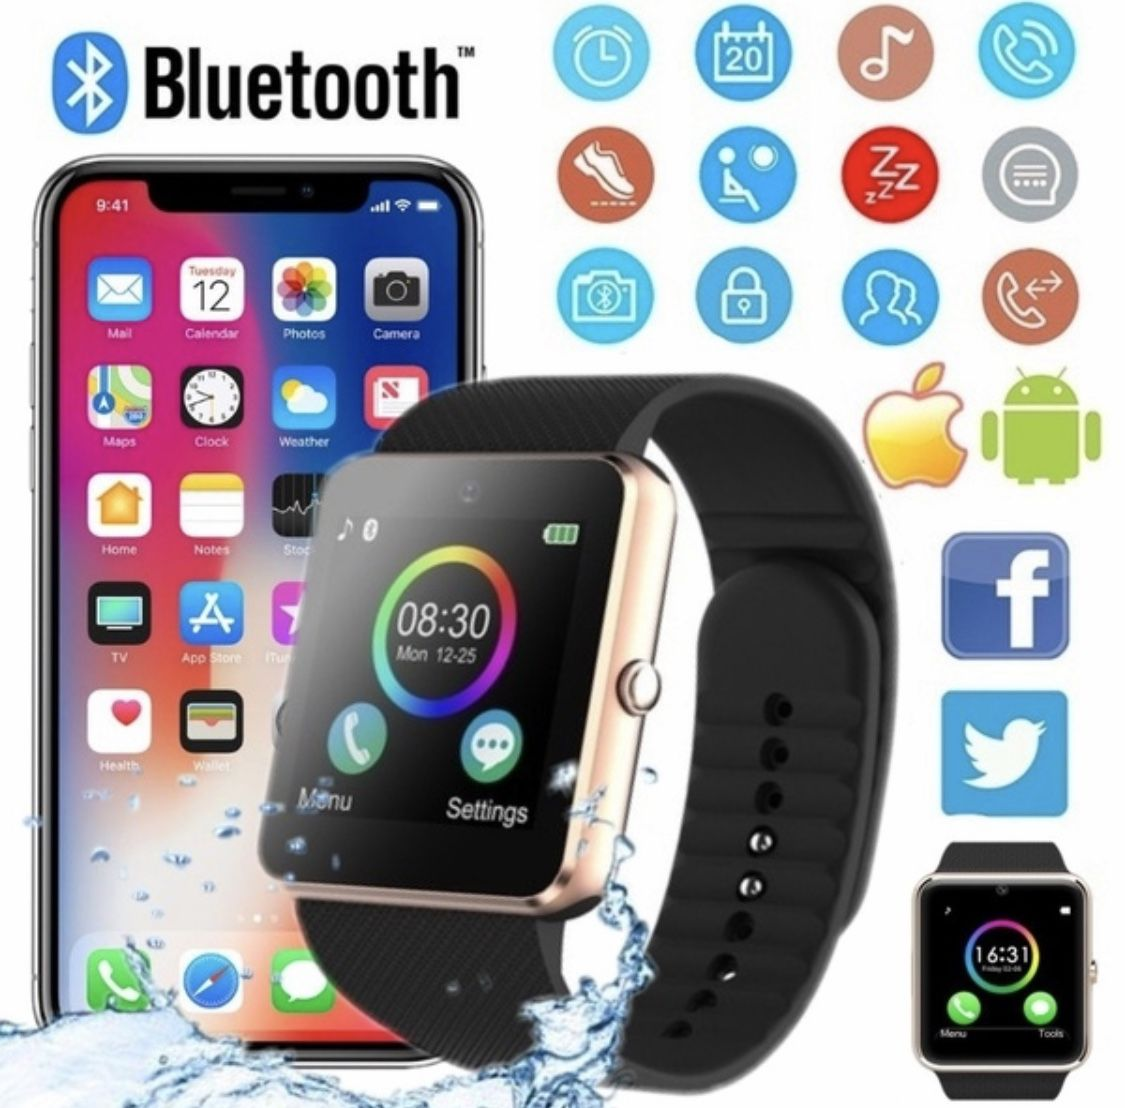 Package : 1 X GT08 Smart Watch 1 X User Manual 1 X USB Cable